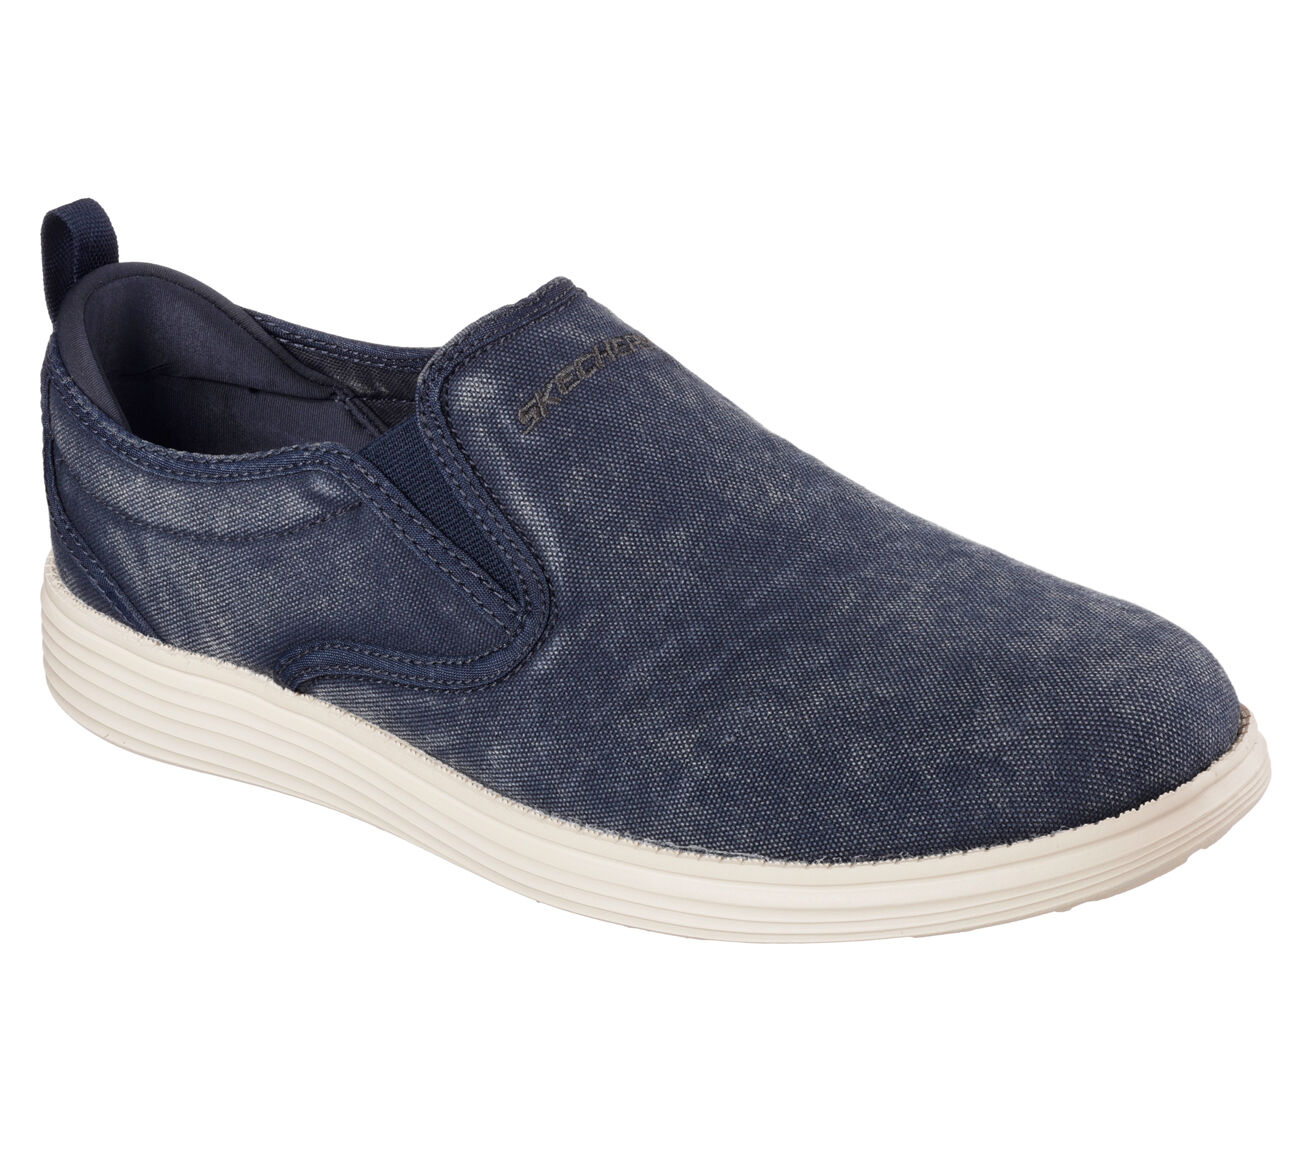 Men's SKECHERS RELAXED FIT  Status - Gelding, 64831  NVY Multiple Sizes Navy